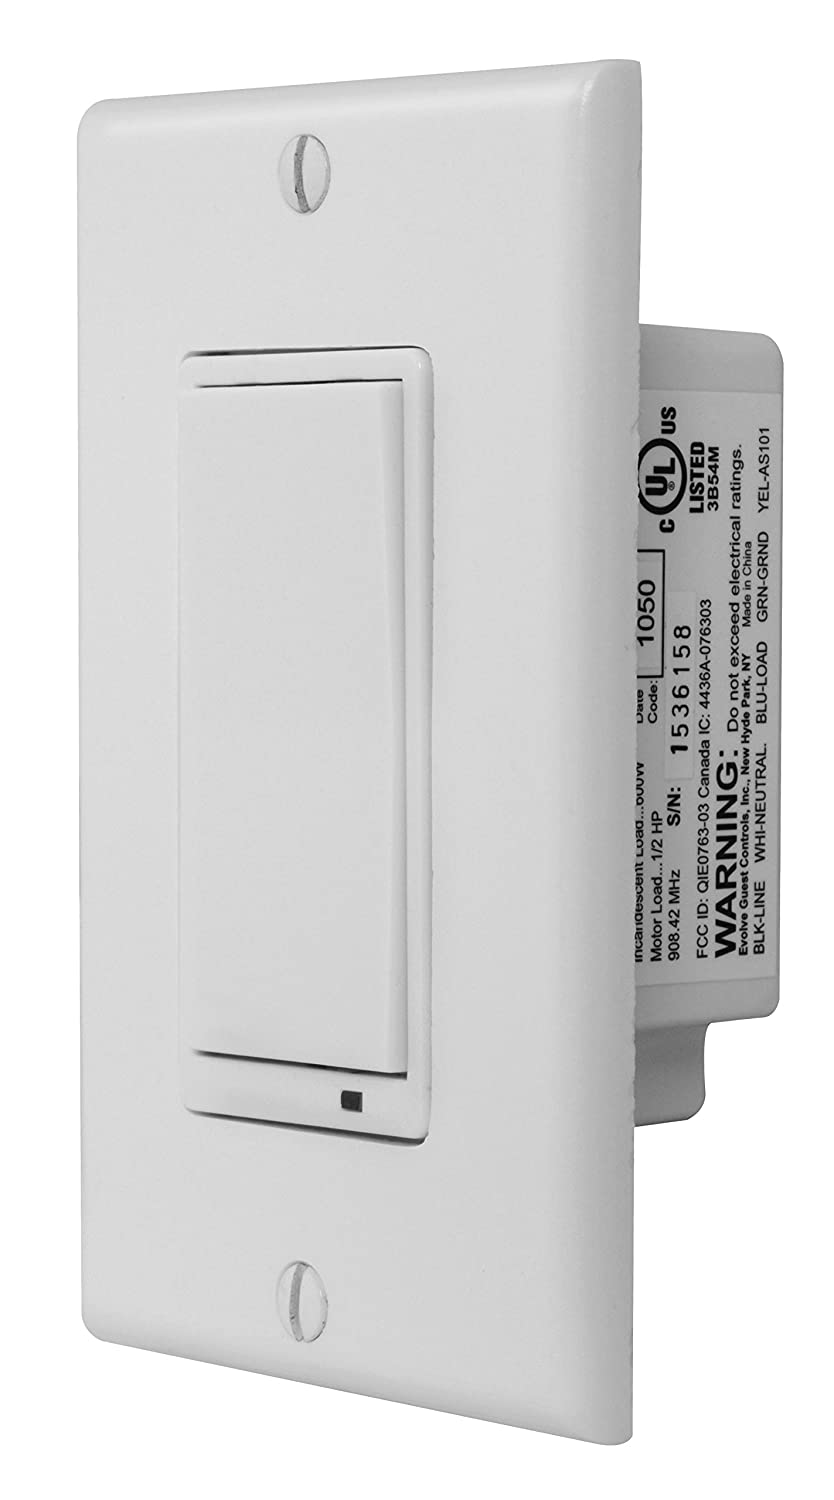 Linear Gocontrol Ws15z 1 Zwave Wall Mount Switch White Small Switches Save Lives Says Alliance Electrical Outlet